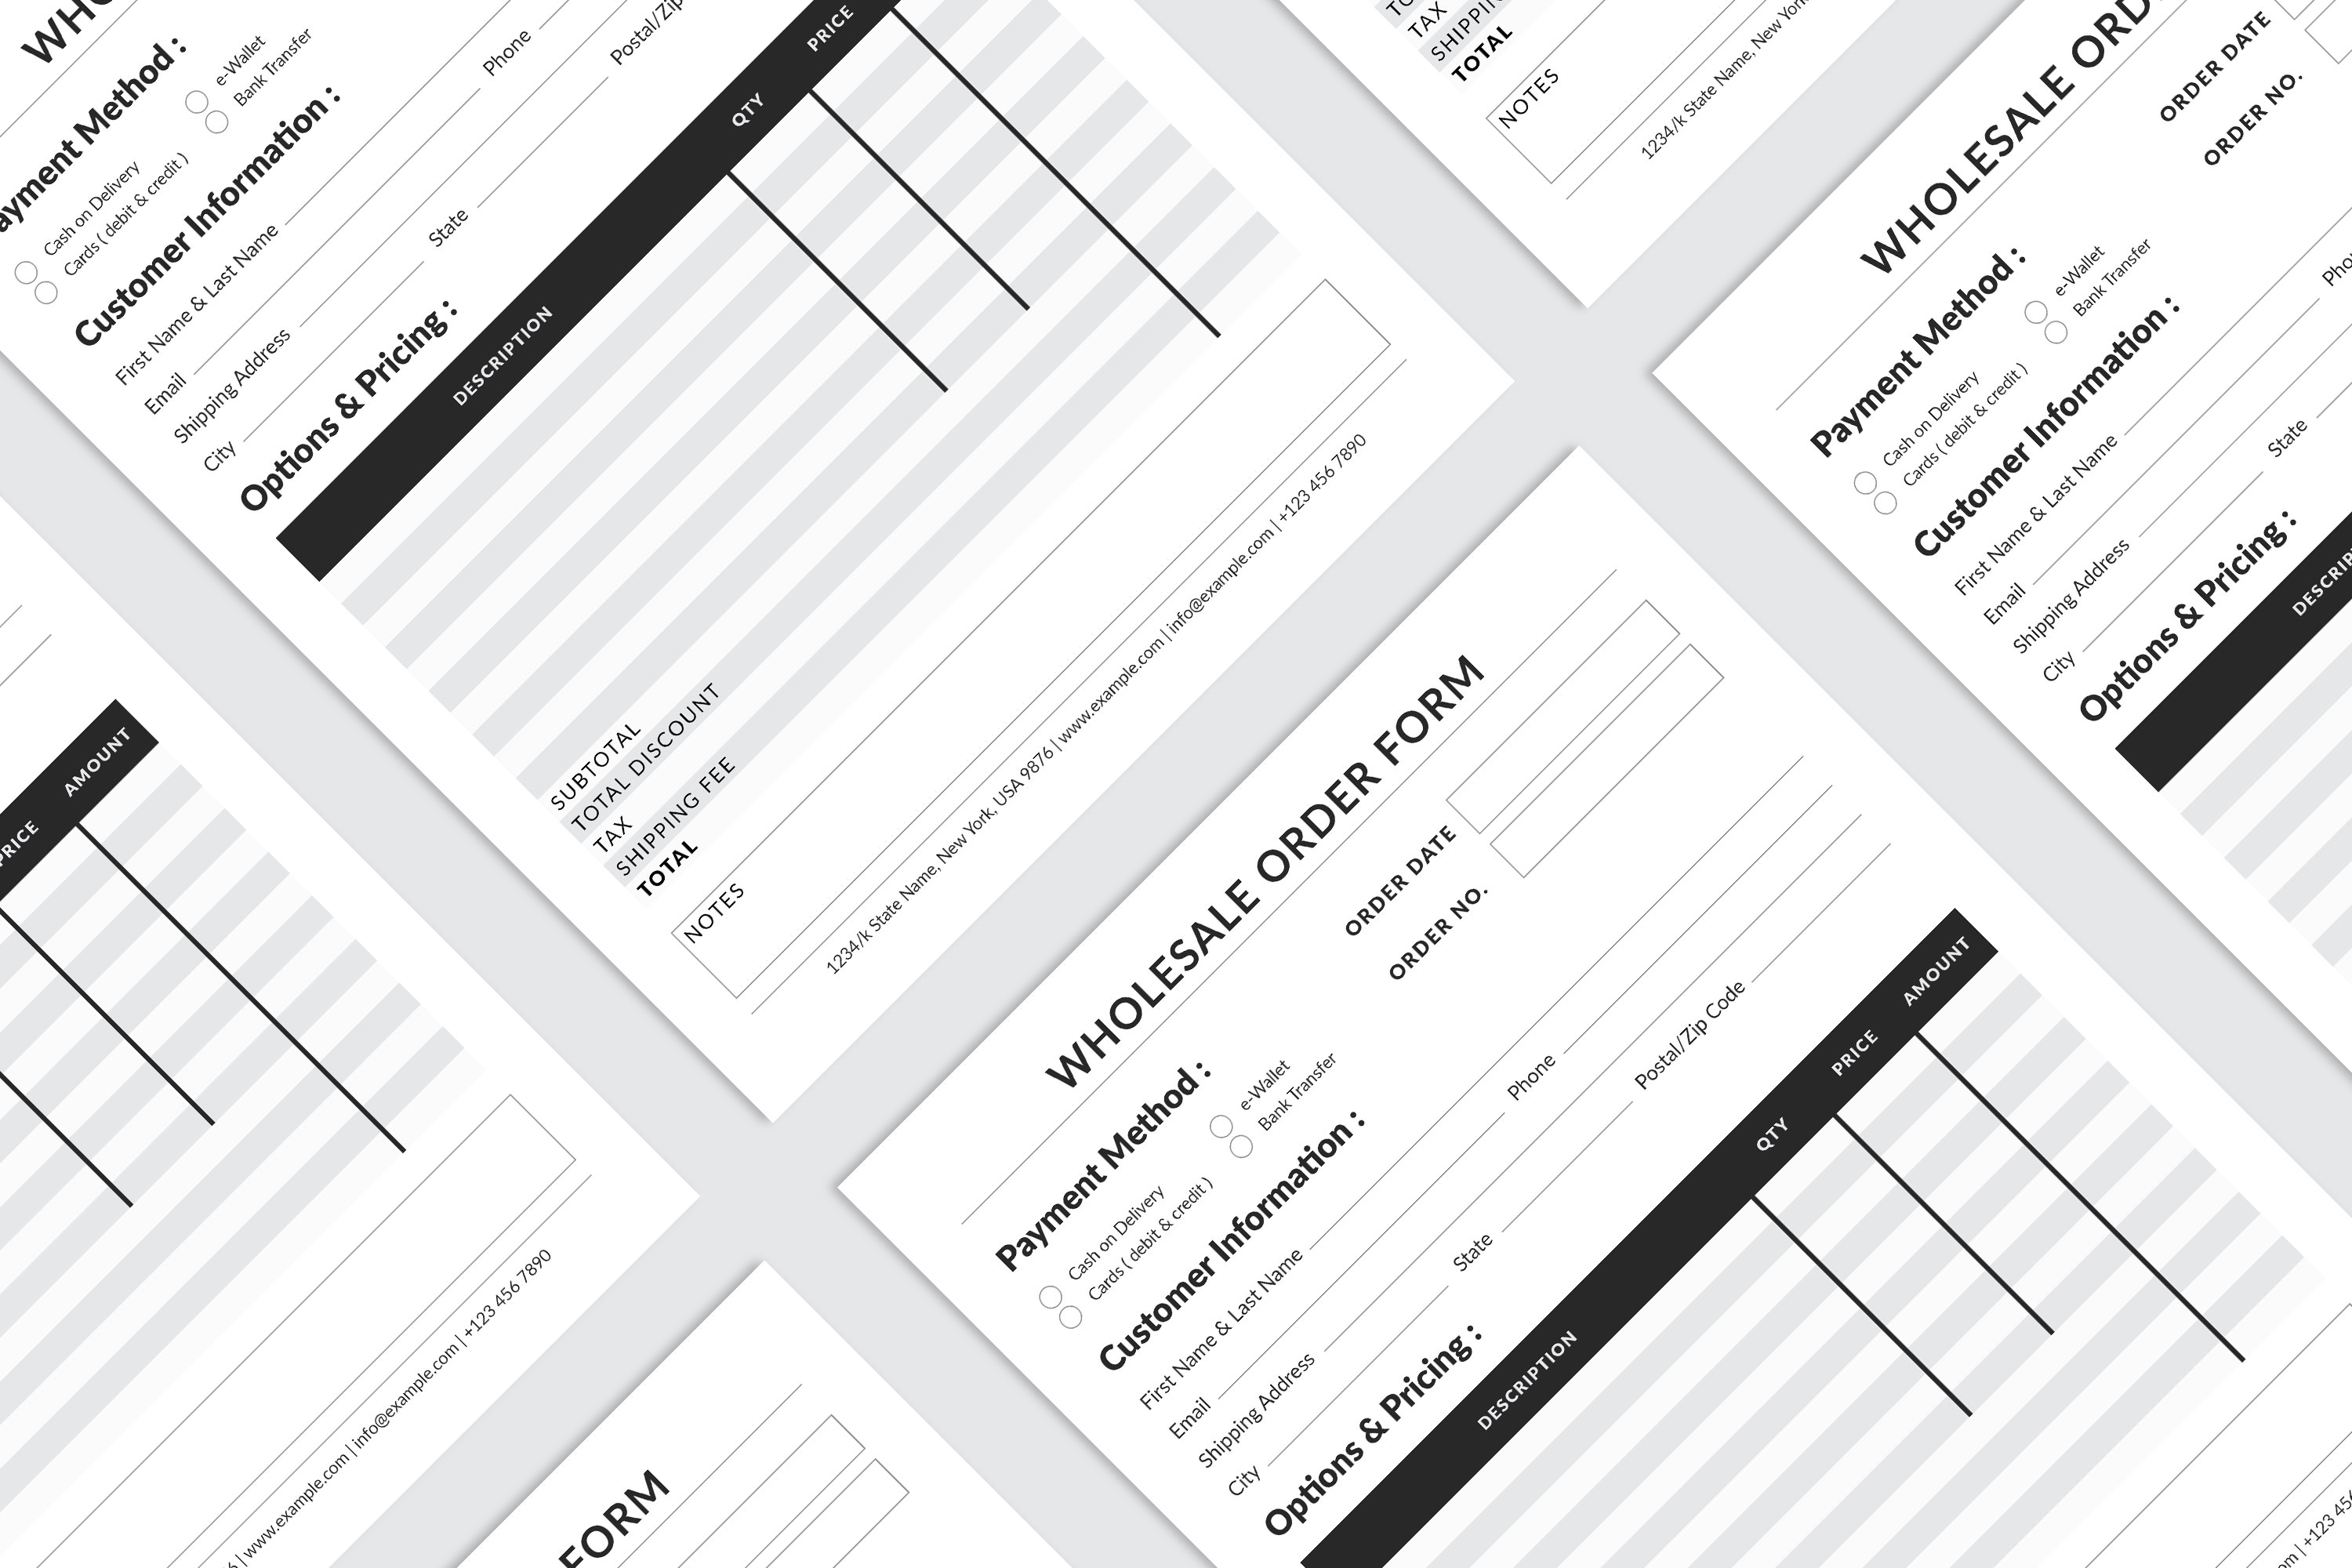 Editable Wholesale Order Form Template example image 1